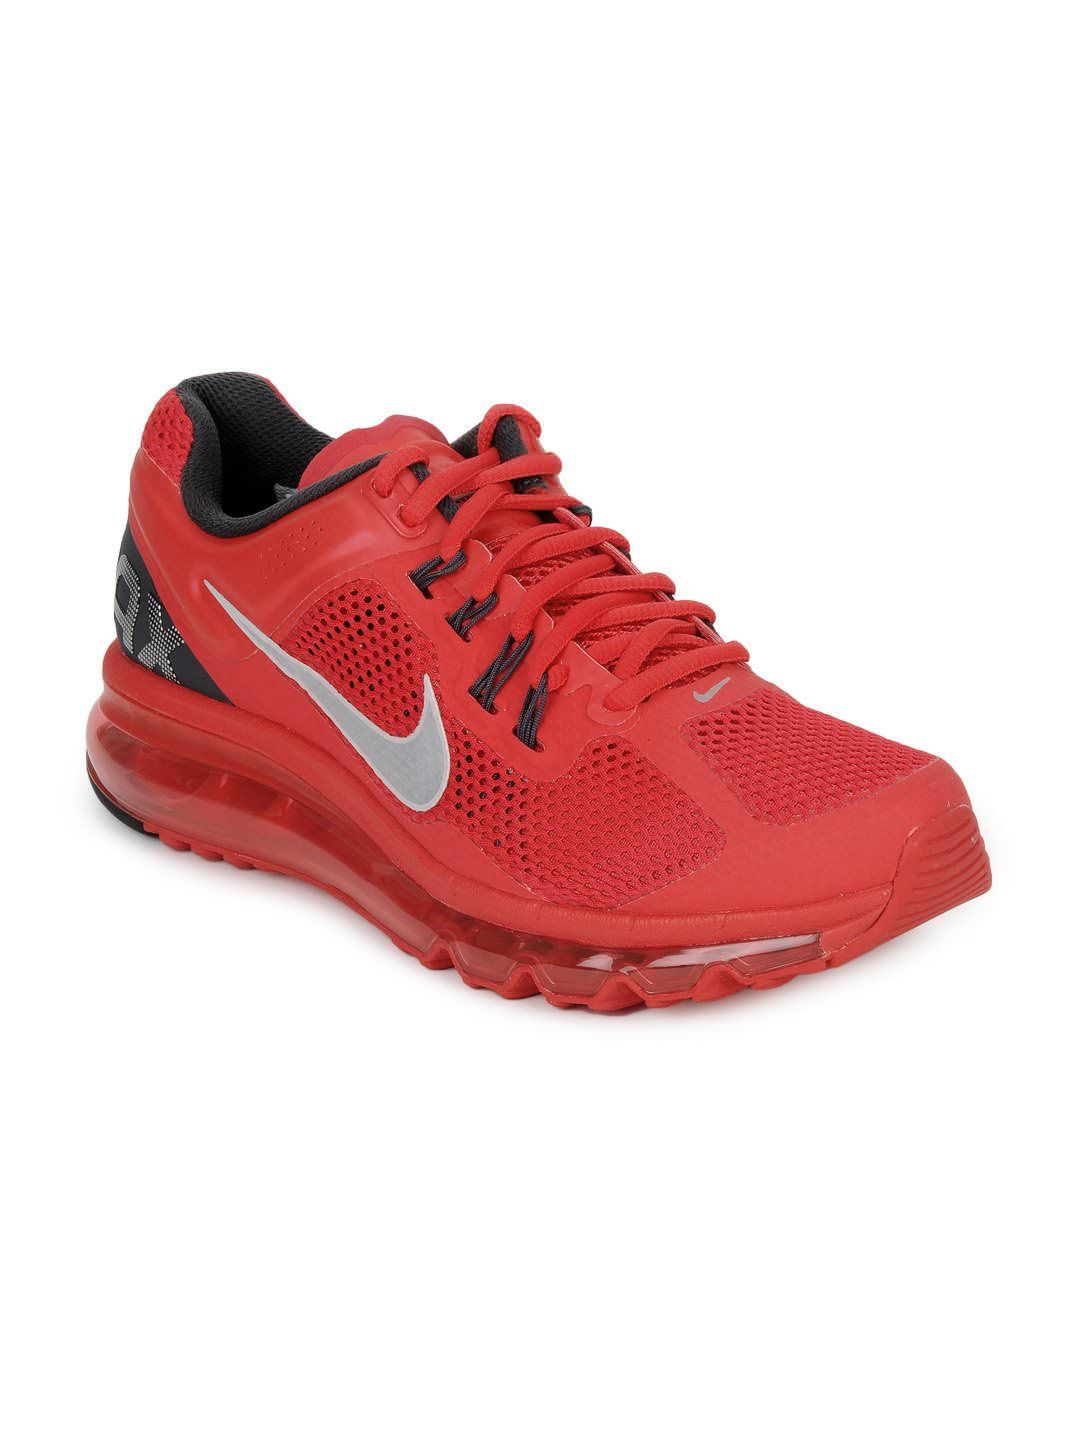 8f5f0694c873 The Most Stylish Nike Shoes For Men